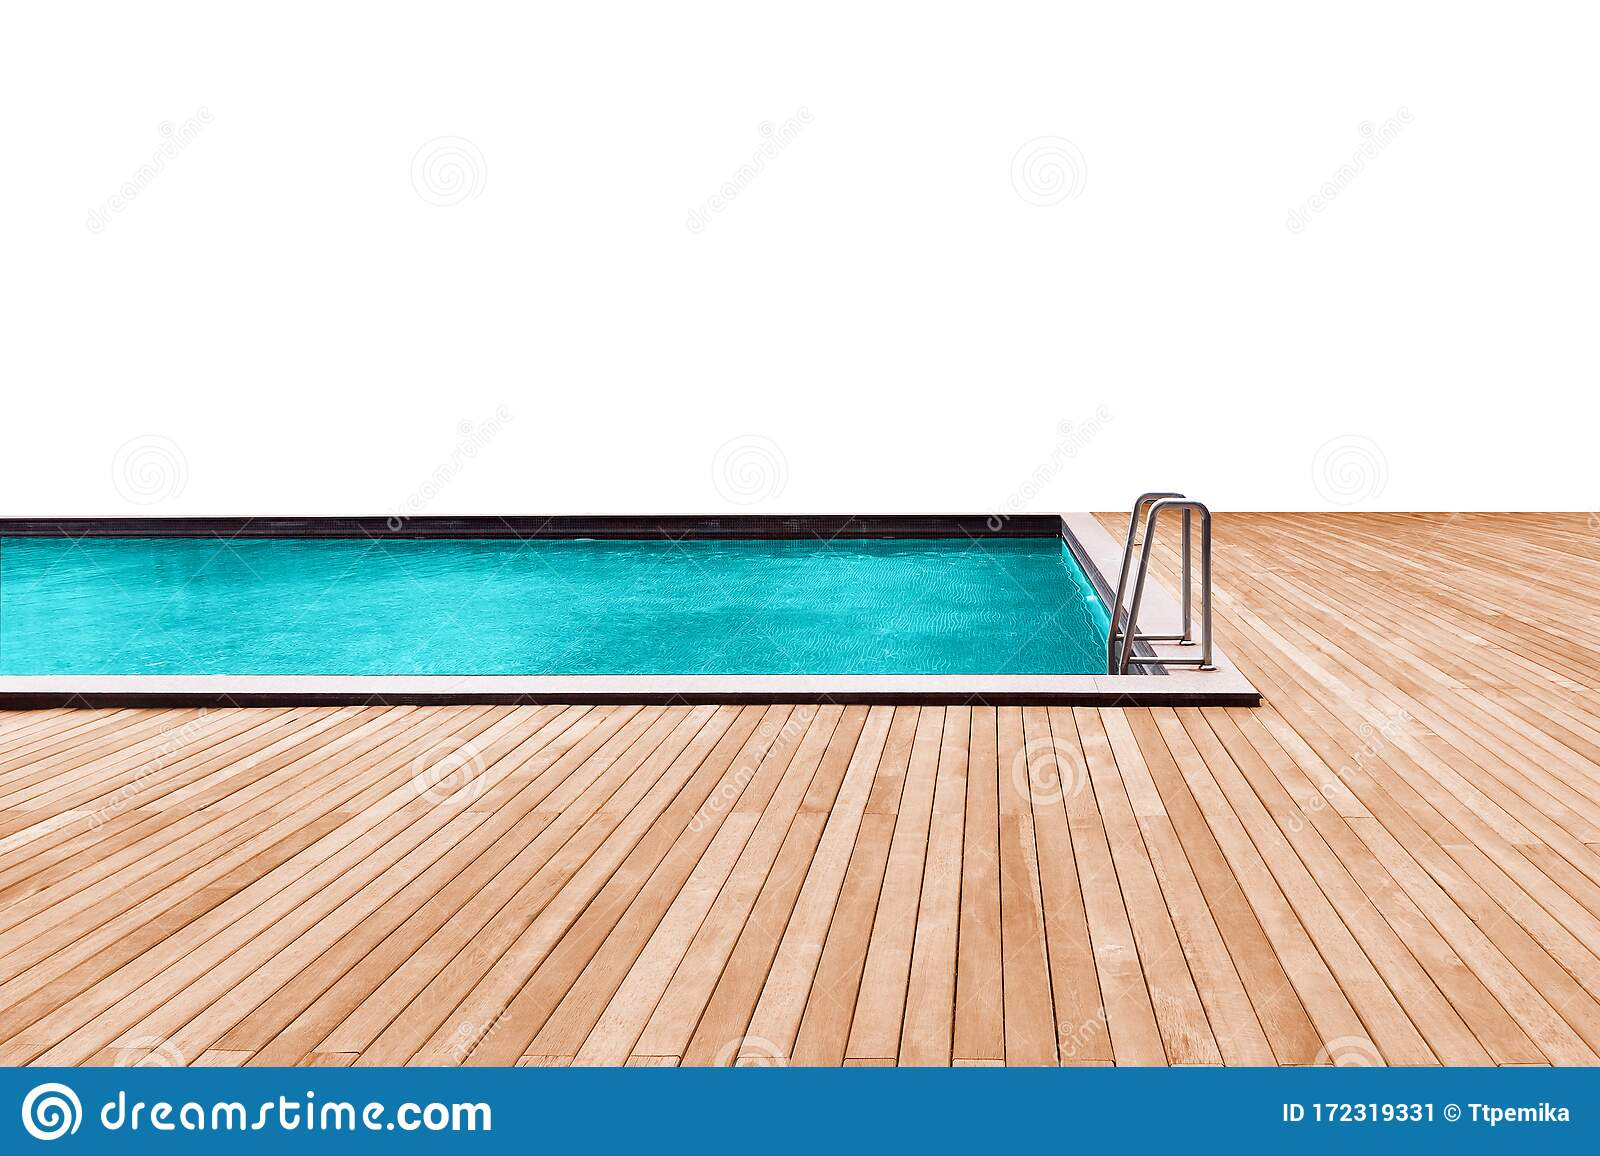 Swimming Pool With Wooden Deck And Stainless Stair Stock Image Image Of Stair Modern 172319331